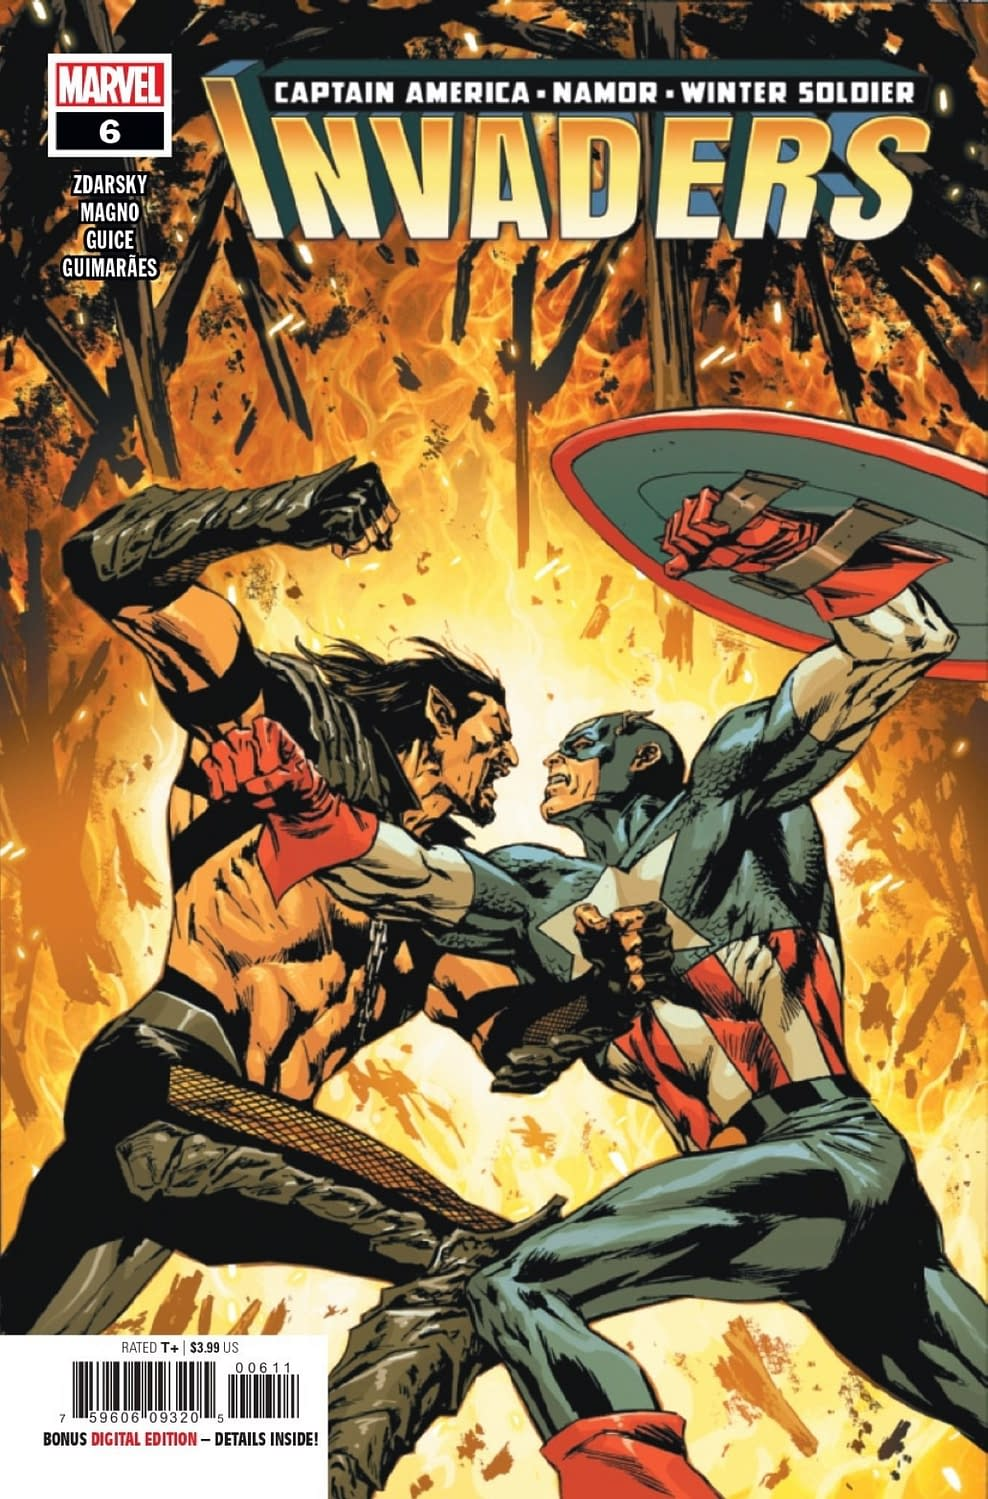 Invaders #6 Preview